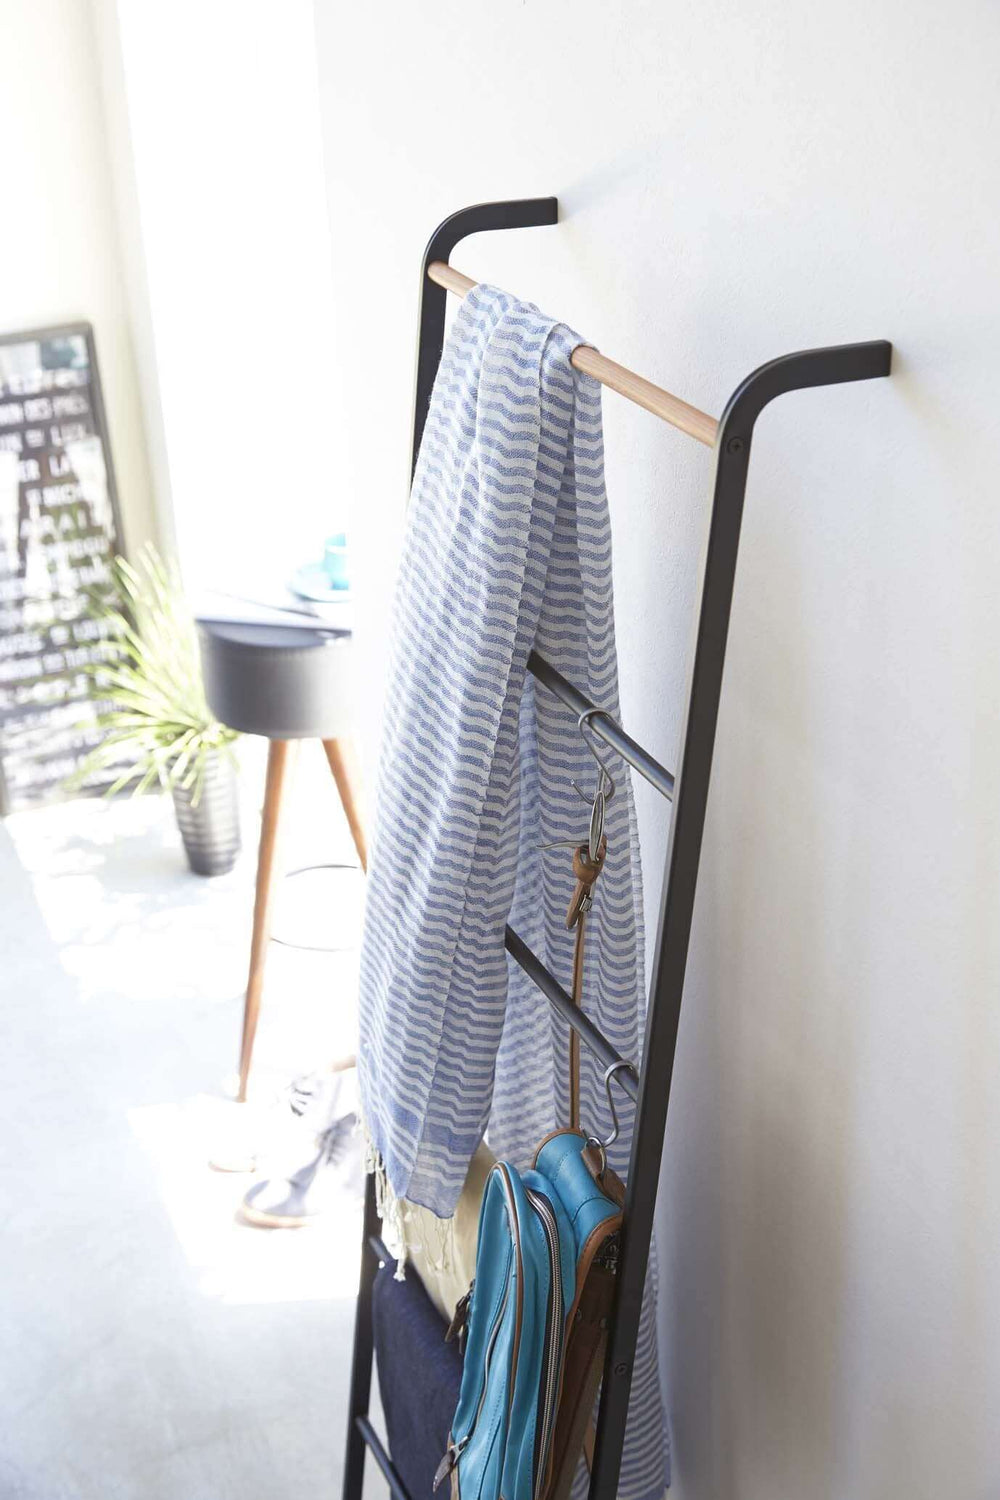 Yamazaki's black leaning ladder hung with scarves and bags in a bedroom